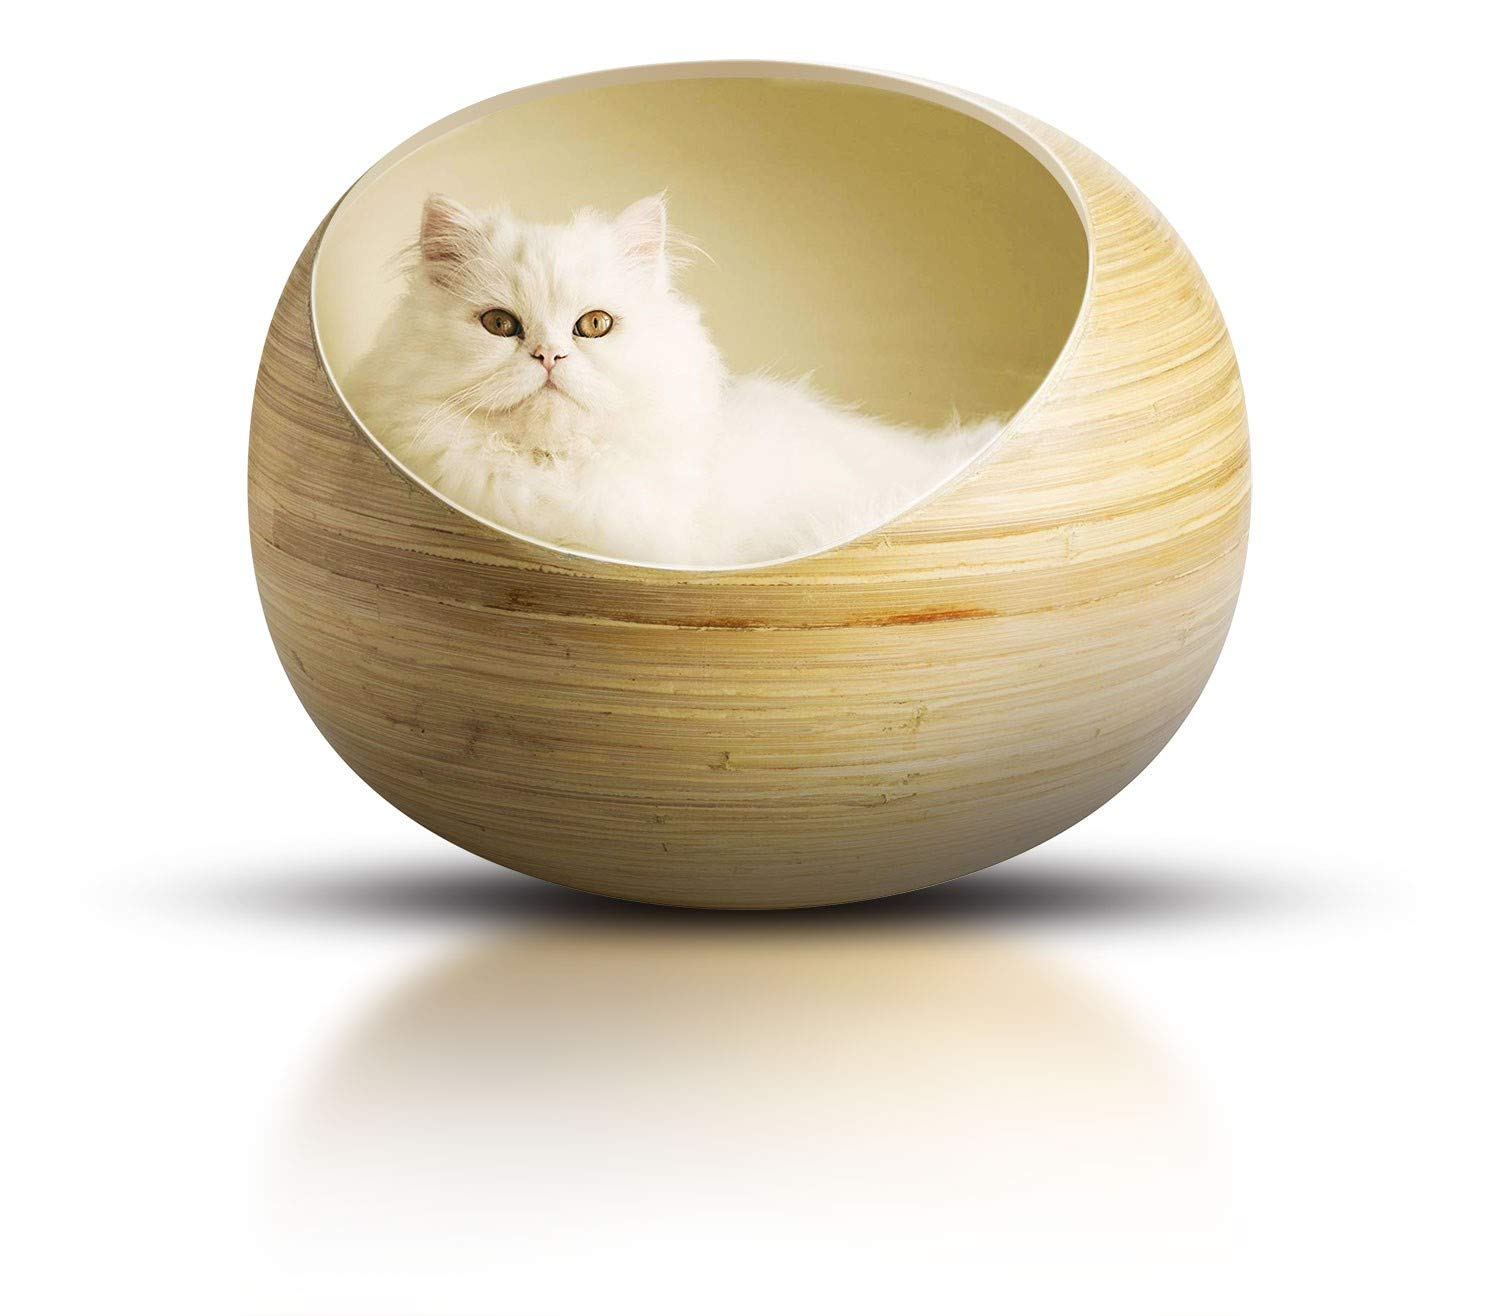 Fhasso Stylish Igloo Cat Cave Bed - Luxury Bamboo Cat Beds - Deluxe Handmade Natural Bed - Eco-Friendly Pods - Washable Cushioned Nest, Prestige Kitten Cozy House, Premium Home Decor Furniture - Milk by Fhasso